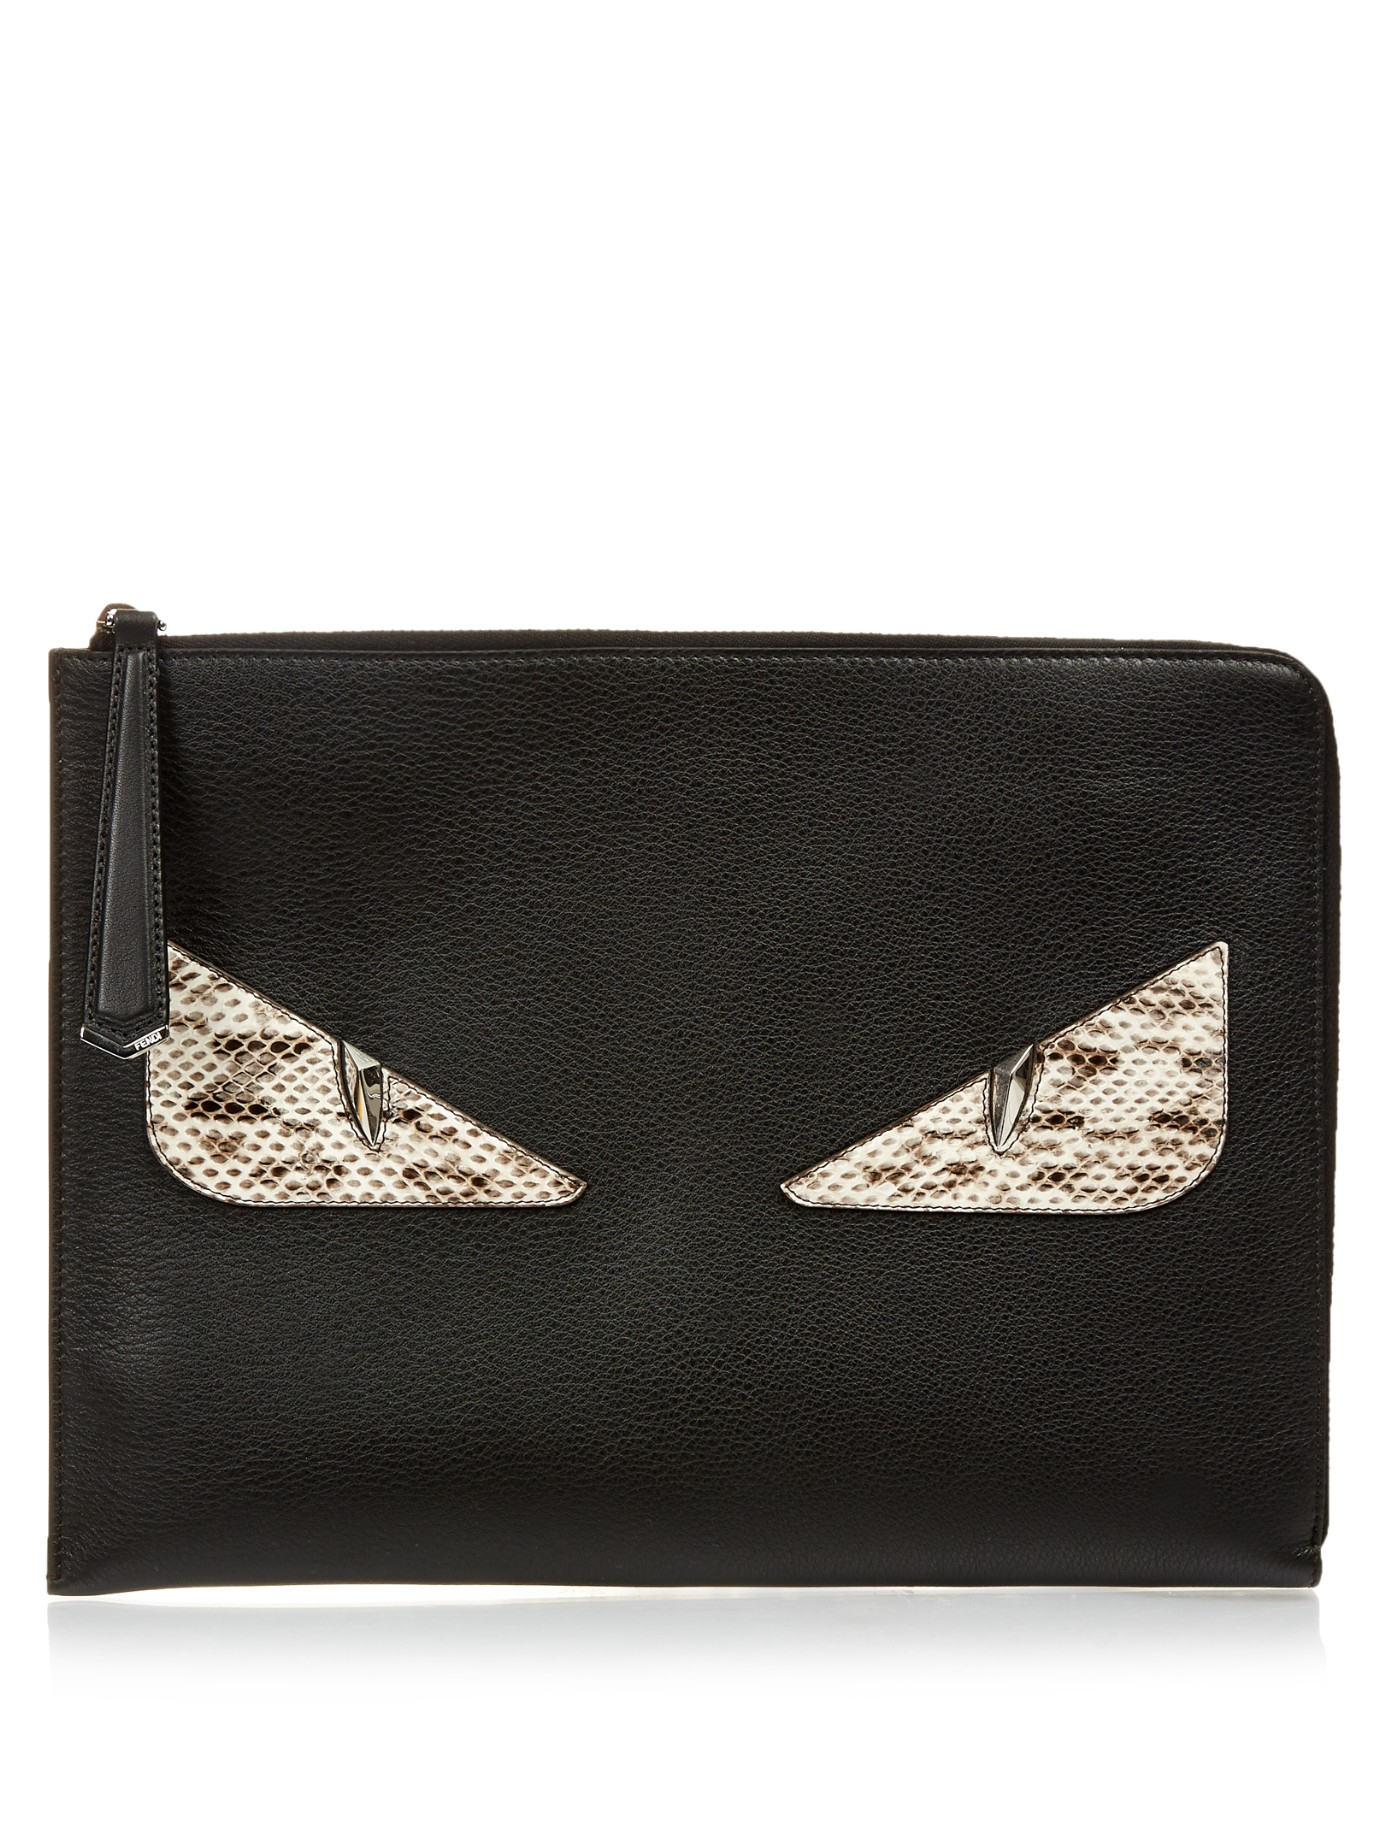 b7d3fd5e037e ... new style fendi bag bugs leather and snakeskin pouch in black lyst  cb48c 7a481 ...